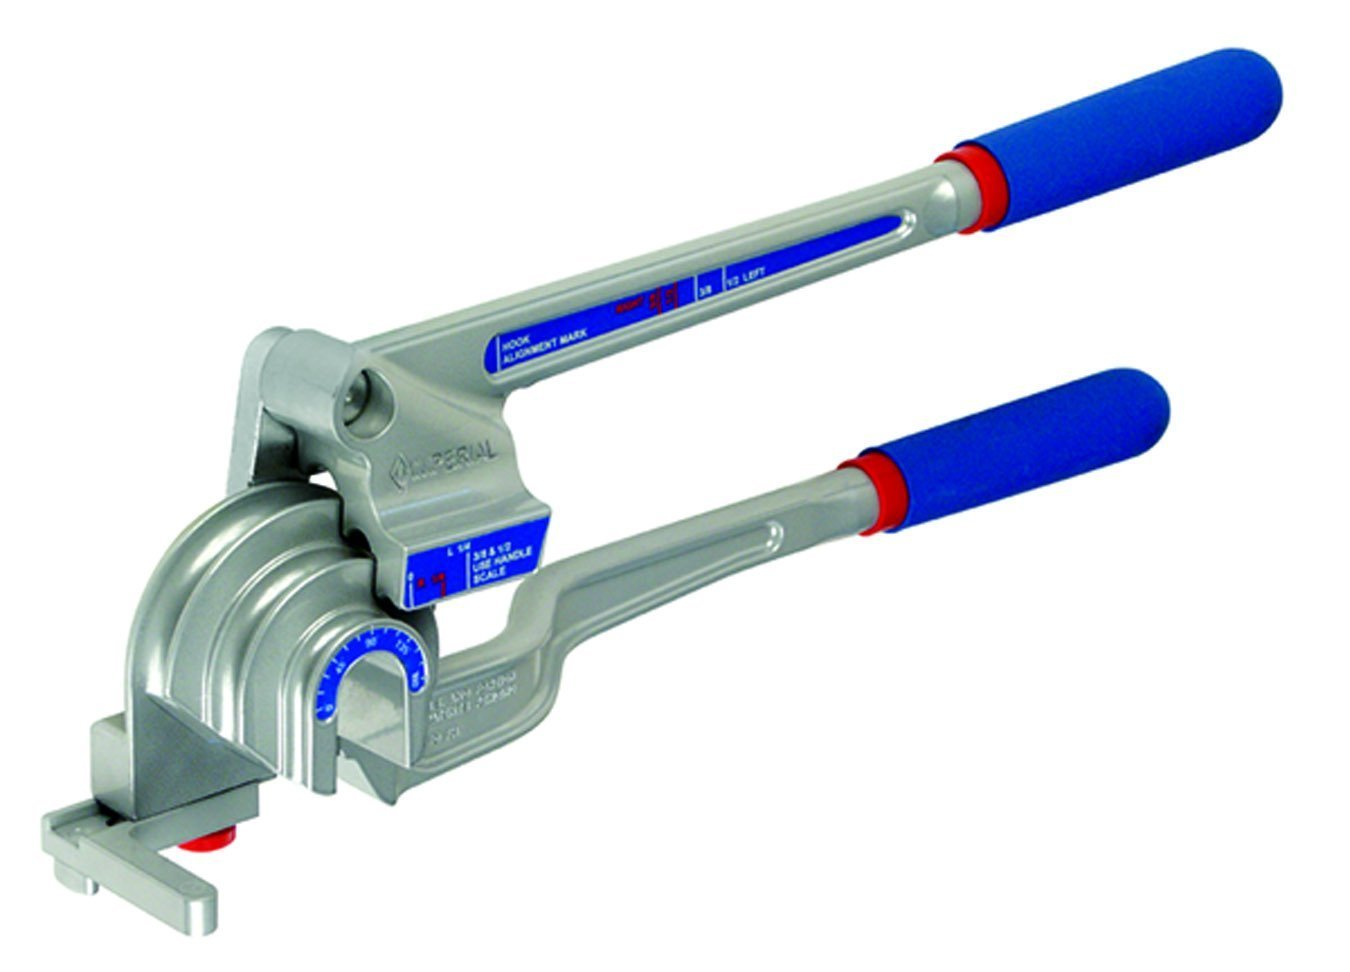 Imperial Tool 370FH Triple Header Tube Bender, 3/16'', 1/4'', 3/8'' and 1/2'' by Imperial Tool